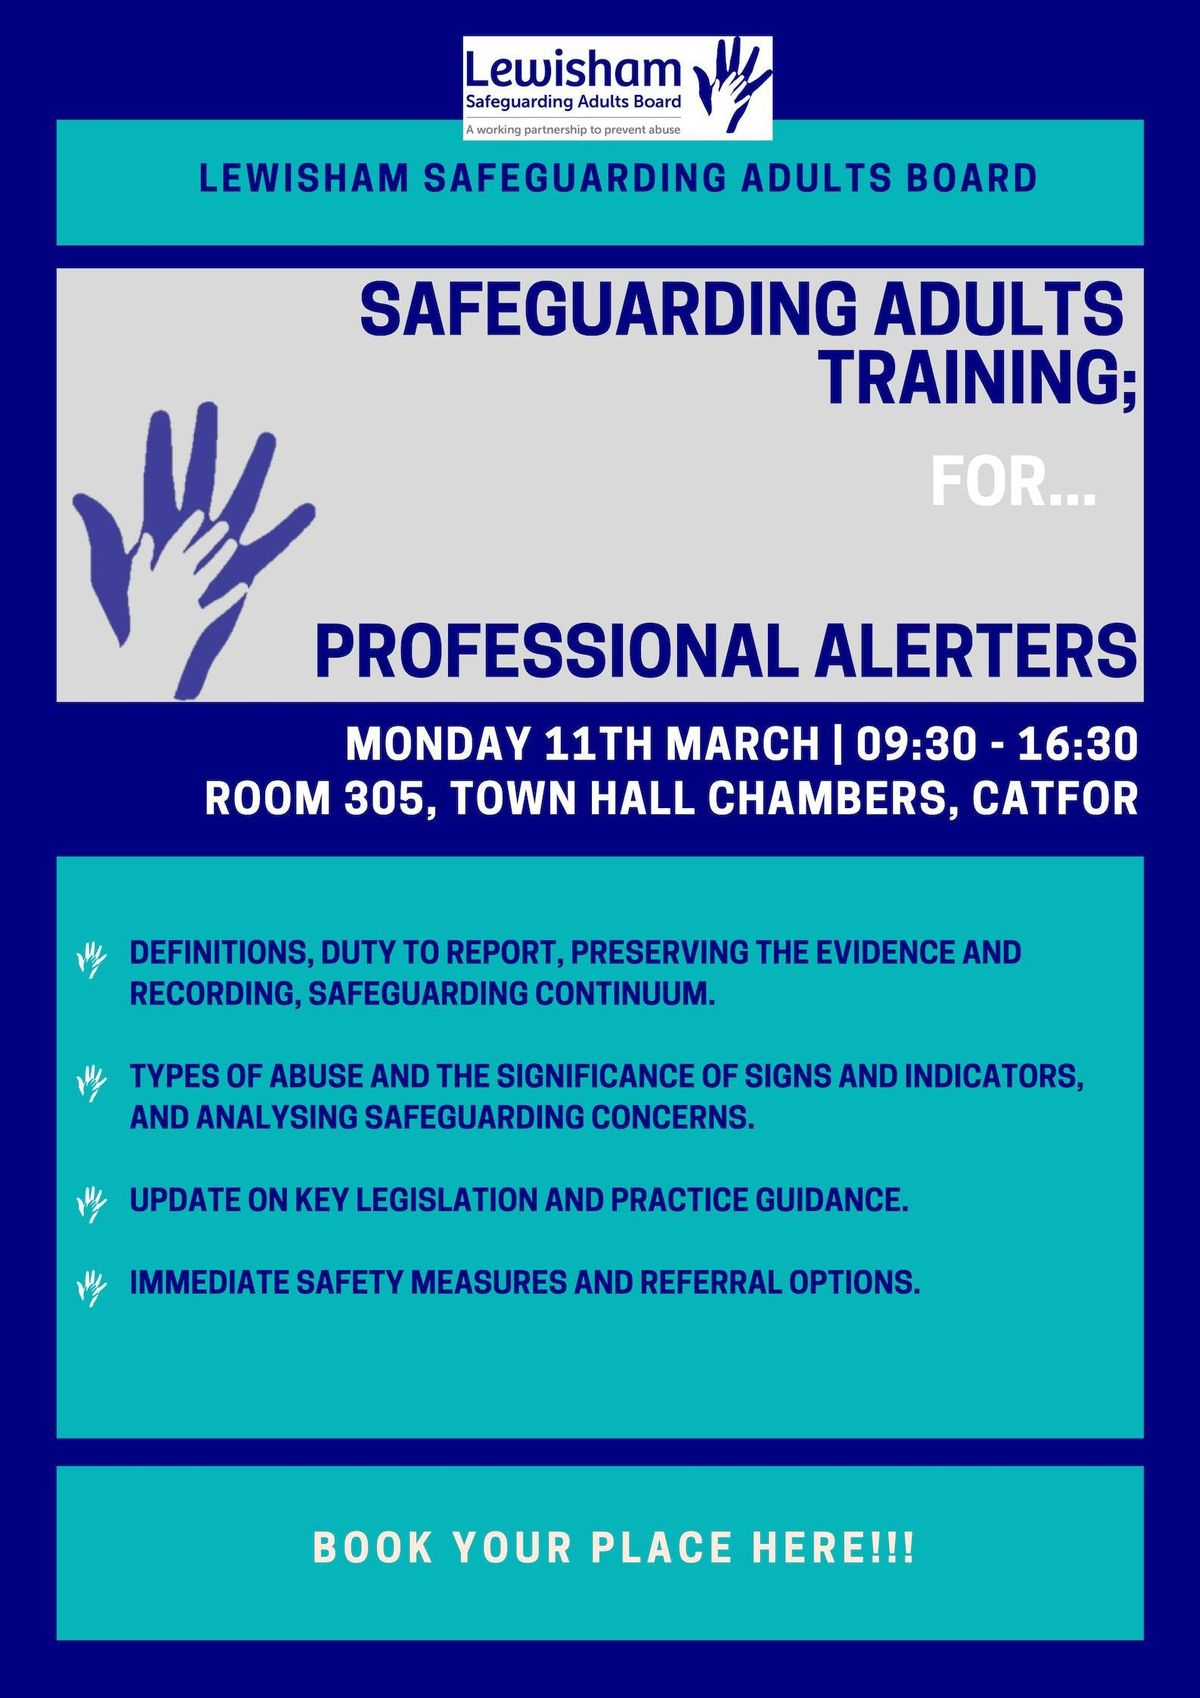 Safeguarding Adults Training for Professional Alerters